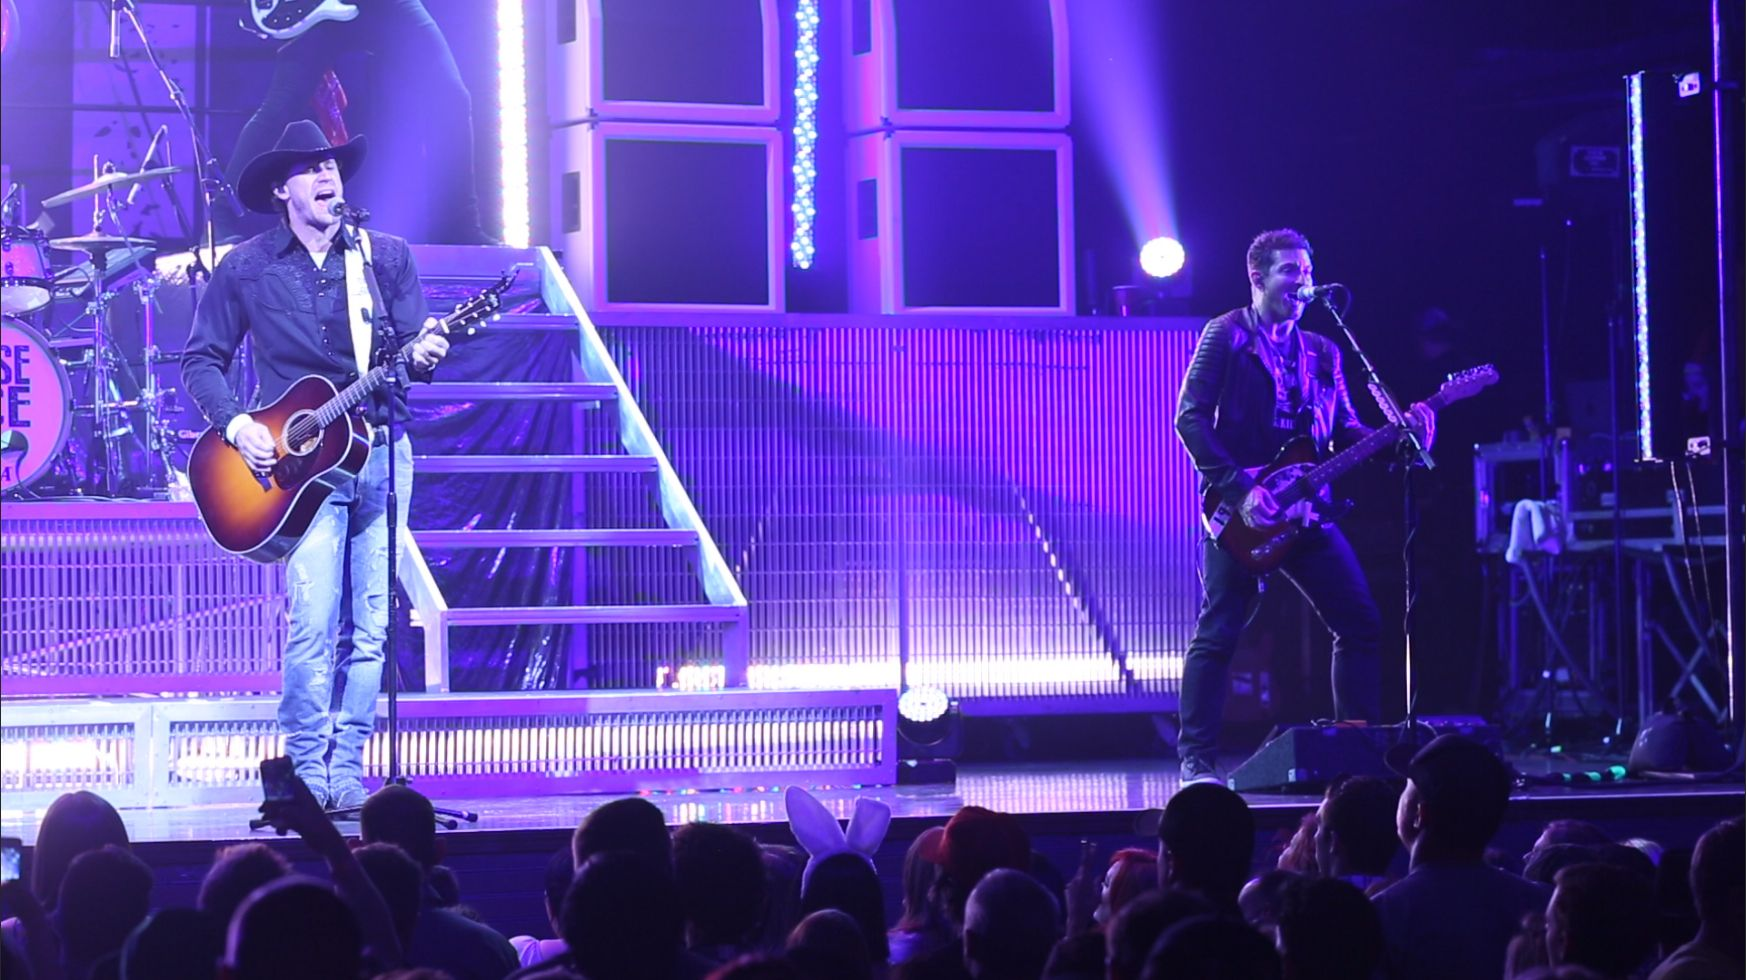 Rock Revival Presents Chase Rice And Old Dominion At House